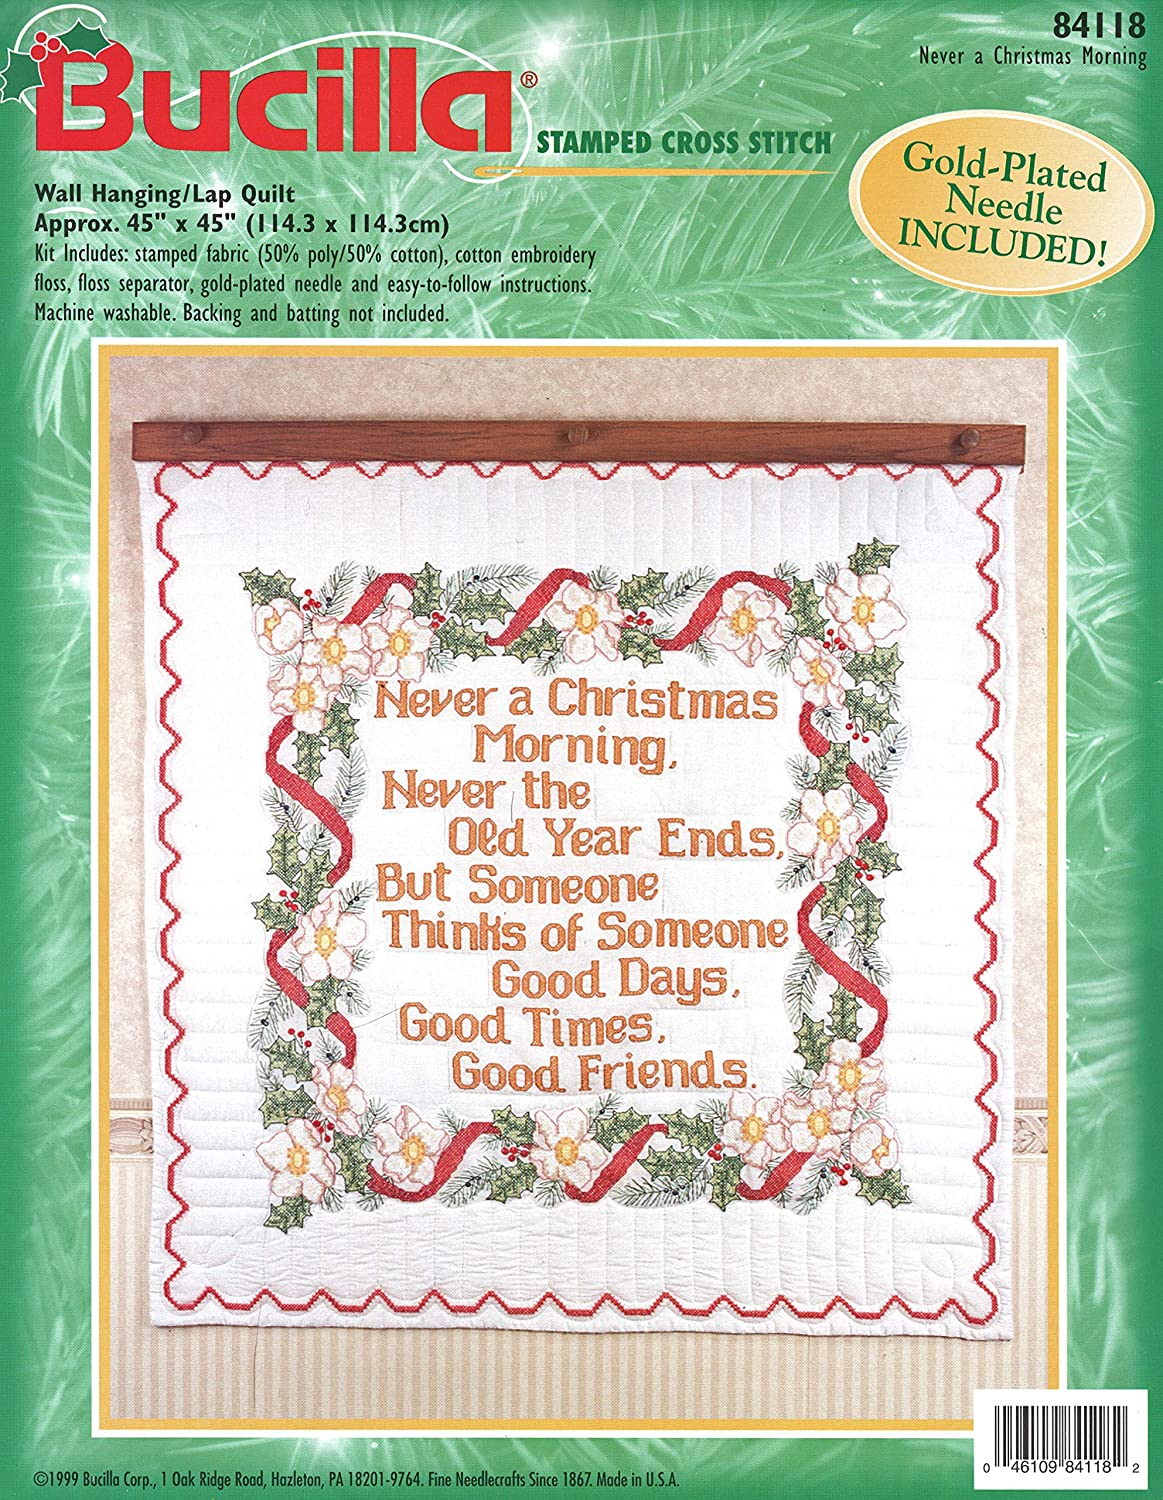 Christmas Downtown America Collection Mini Picture By Bucilla Quick Needlepoint Vintage Small Needlepoint Kit Undated